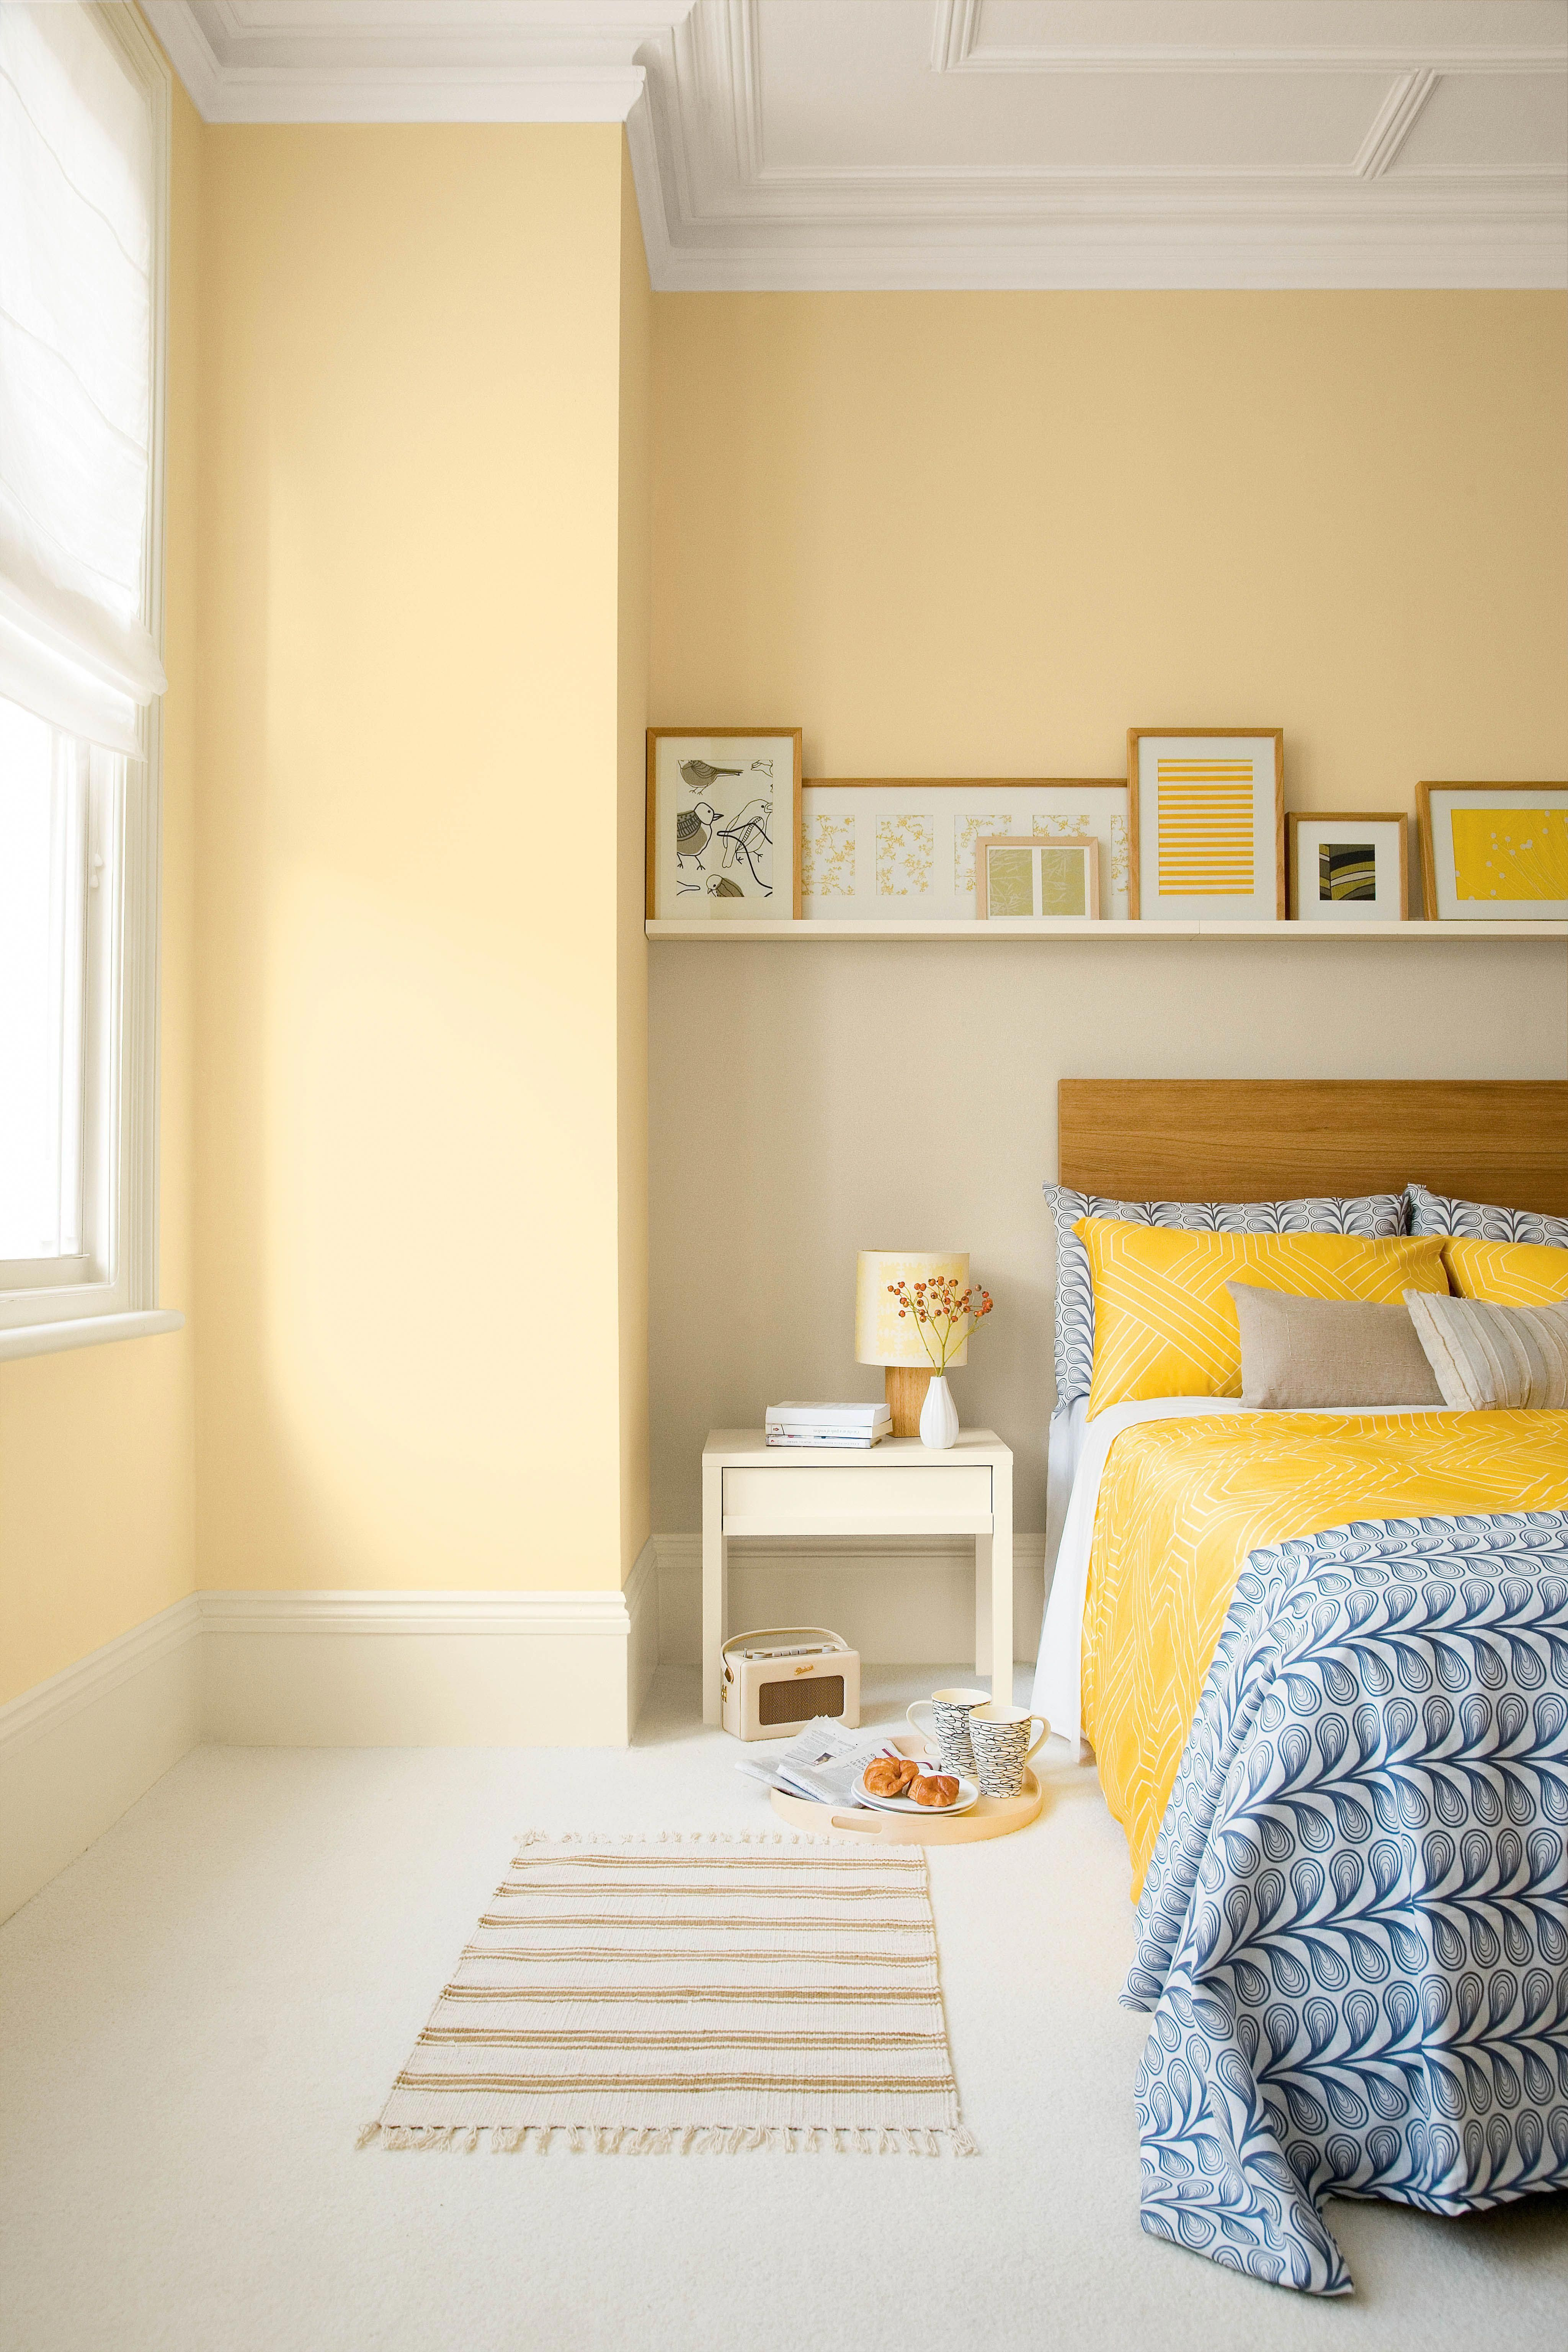 Living Room Paint Color Ideas And Inspiration From Jbirdny Photos Homedecorbedroom Yellow Bedroom Decor Yellow Living Room Yellow Bedroom Paint